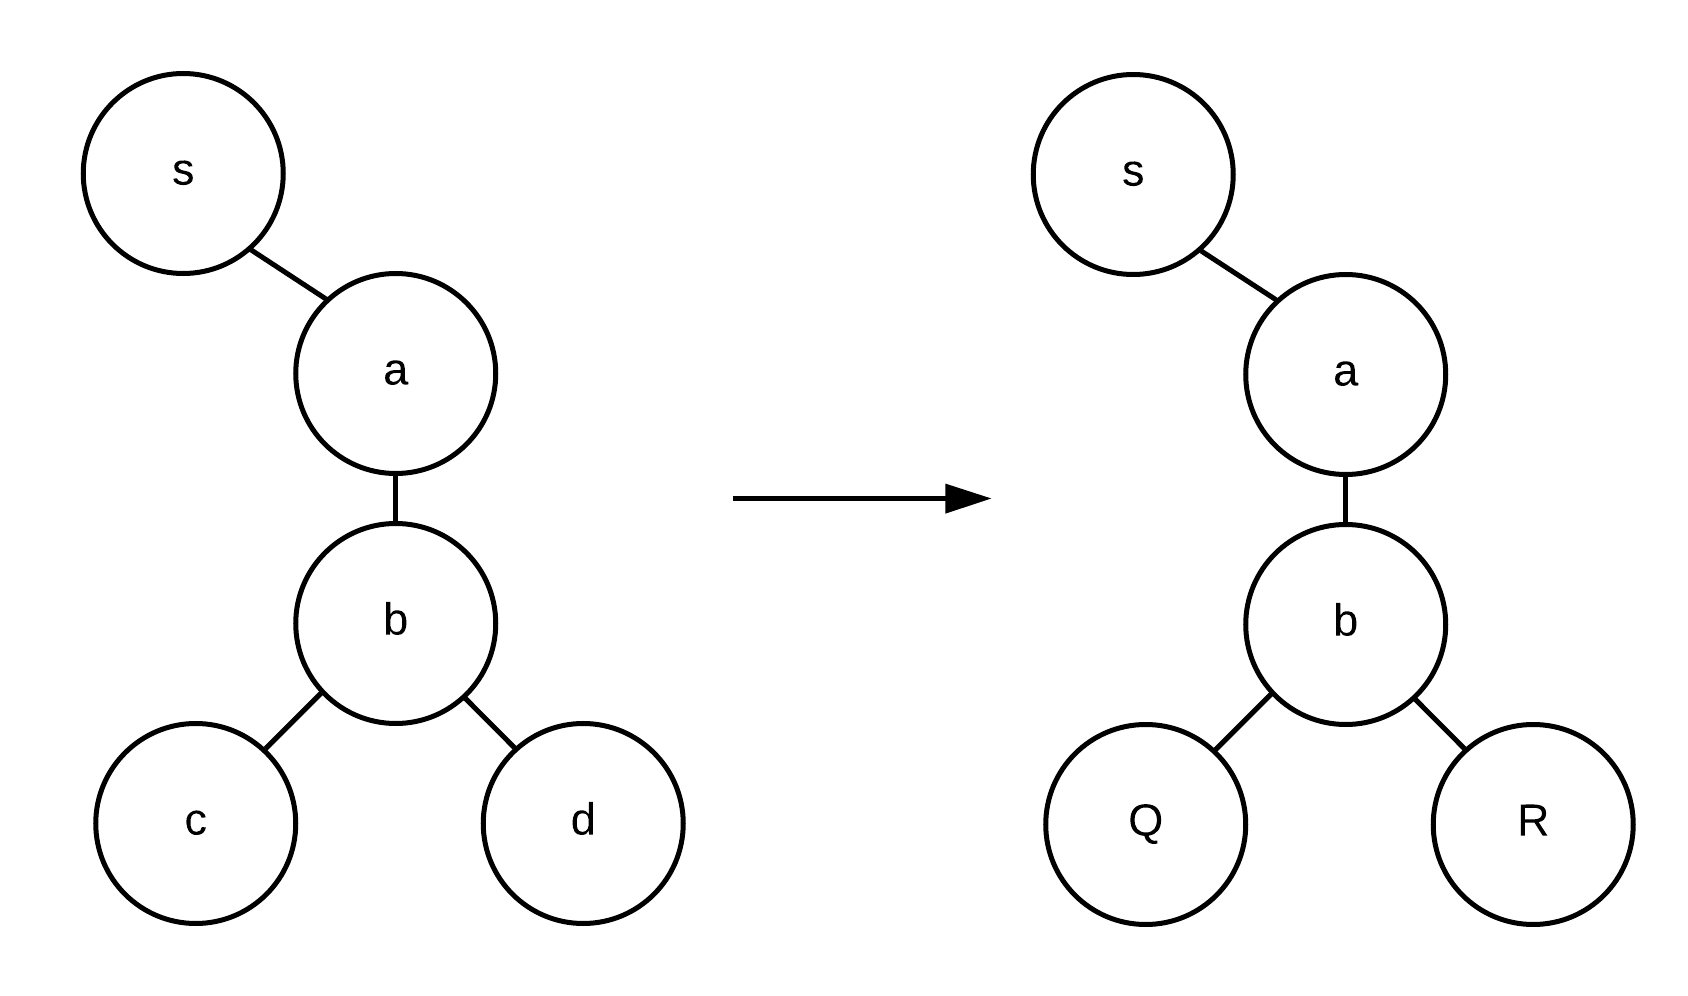 ../_images/tree-structure-substituted.png